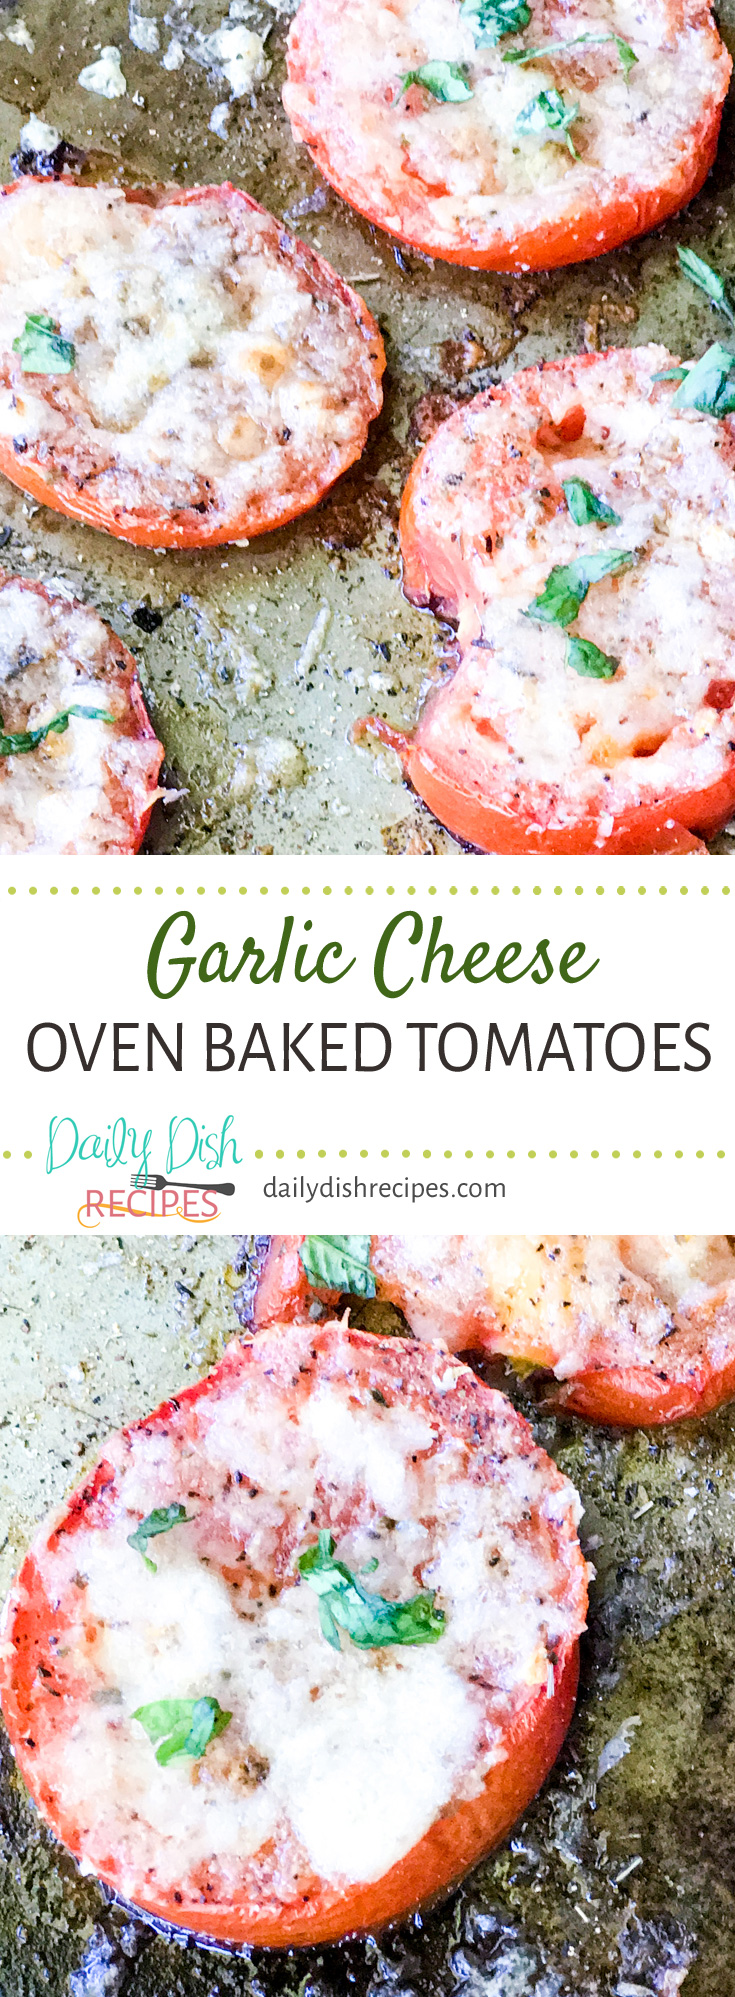 These Garlic Cheese Oven Baked Tomatoes are the bomb as a healthy snack option. My two year old grandson LOVES them and if you love tomatoes and delicious tomato recipes, you will too!